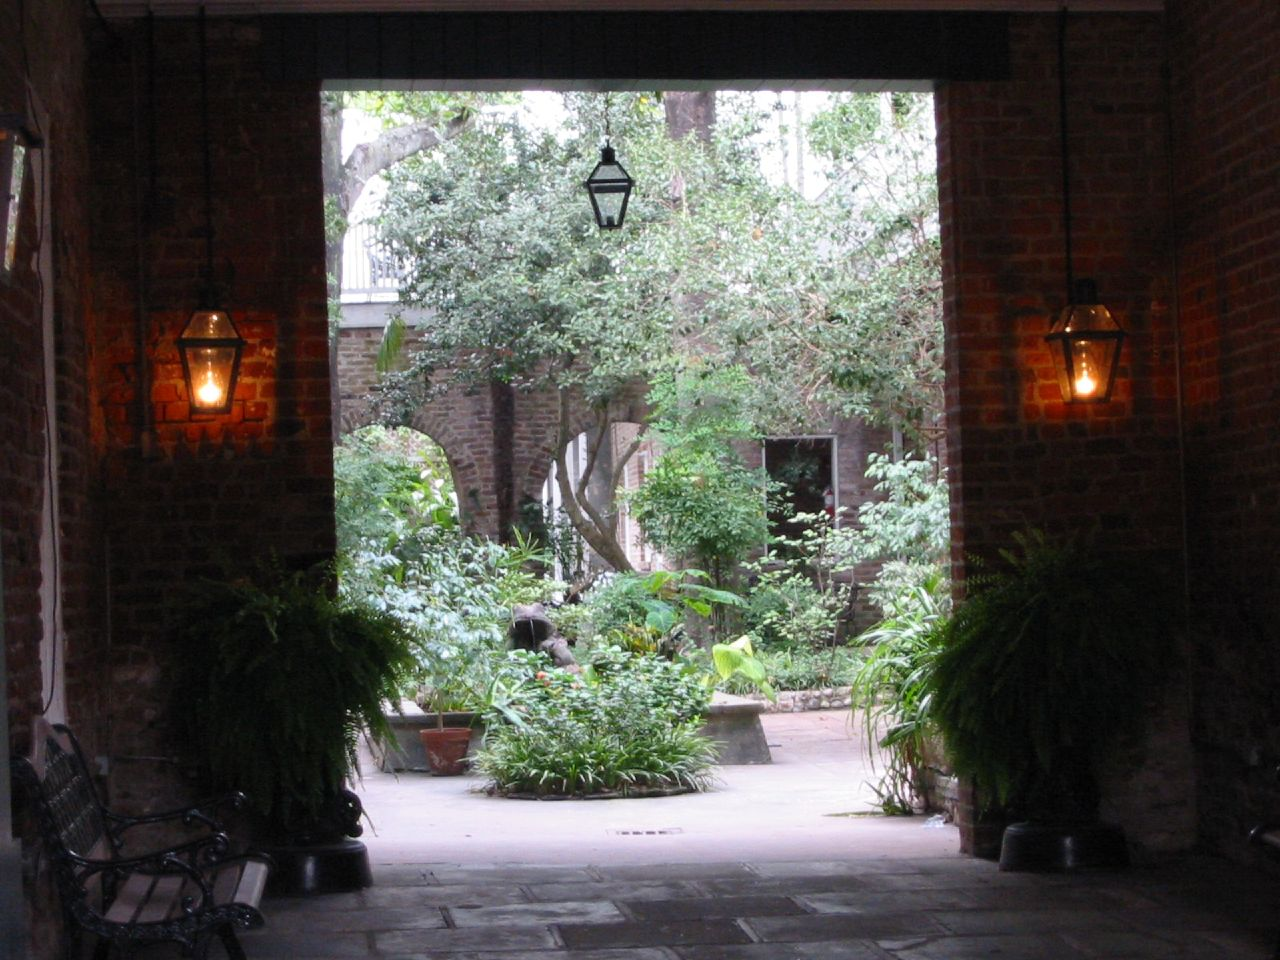 Secluded passages leading to lush courtyards are a common feature of the French Quarter. Image via Wikimedia Commons.